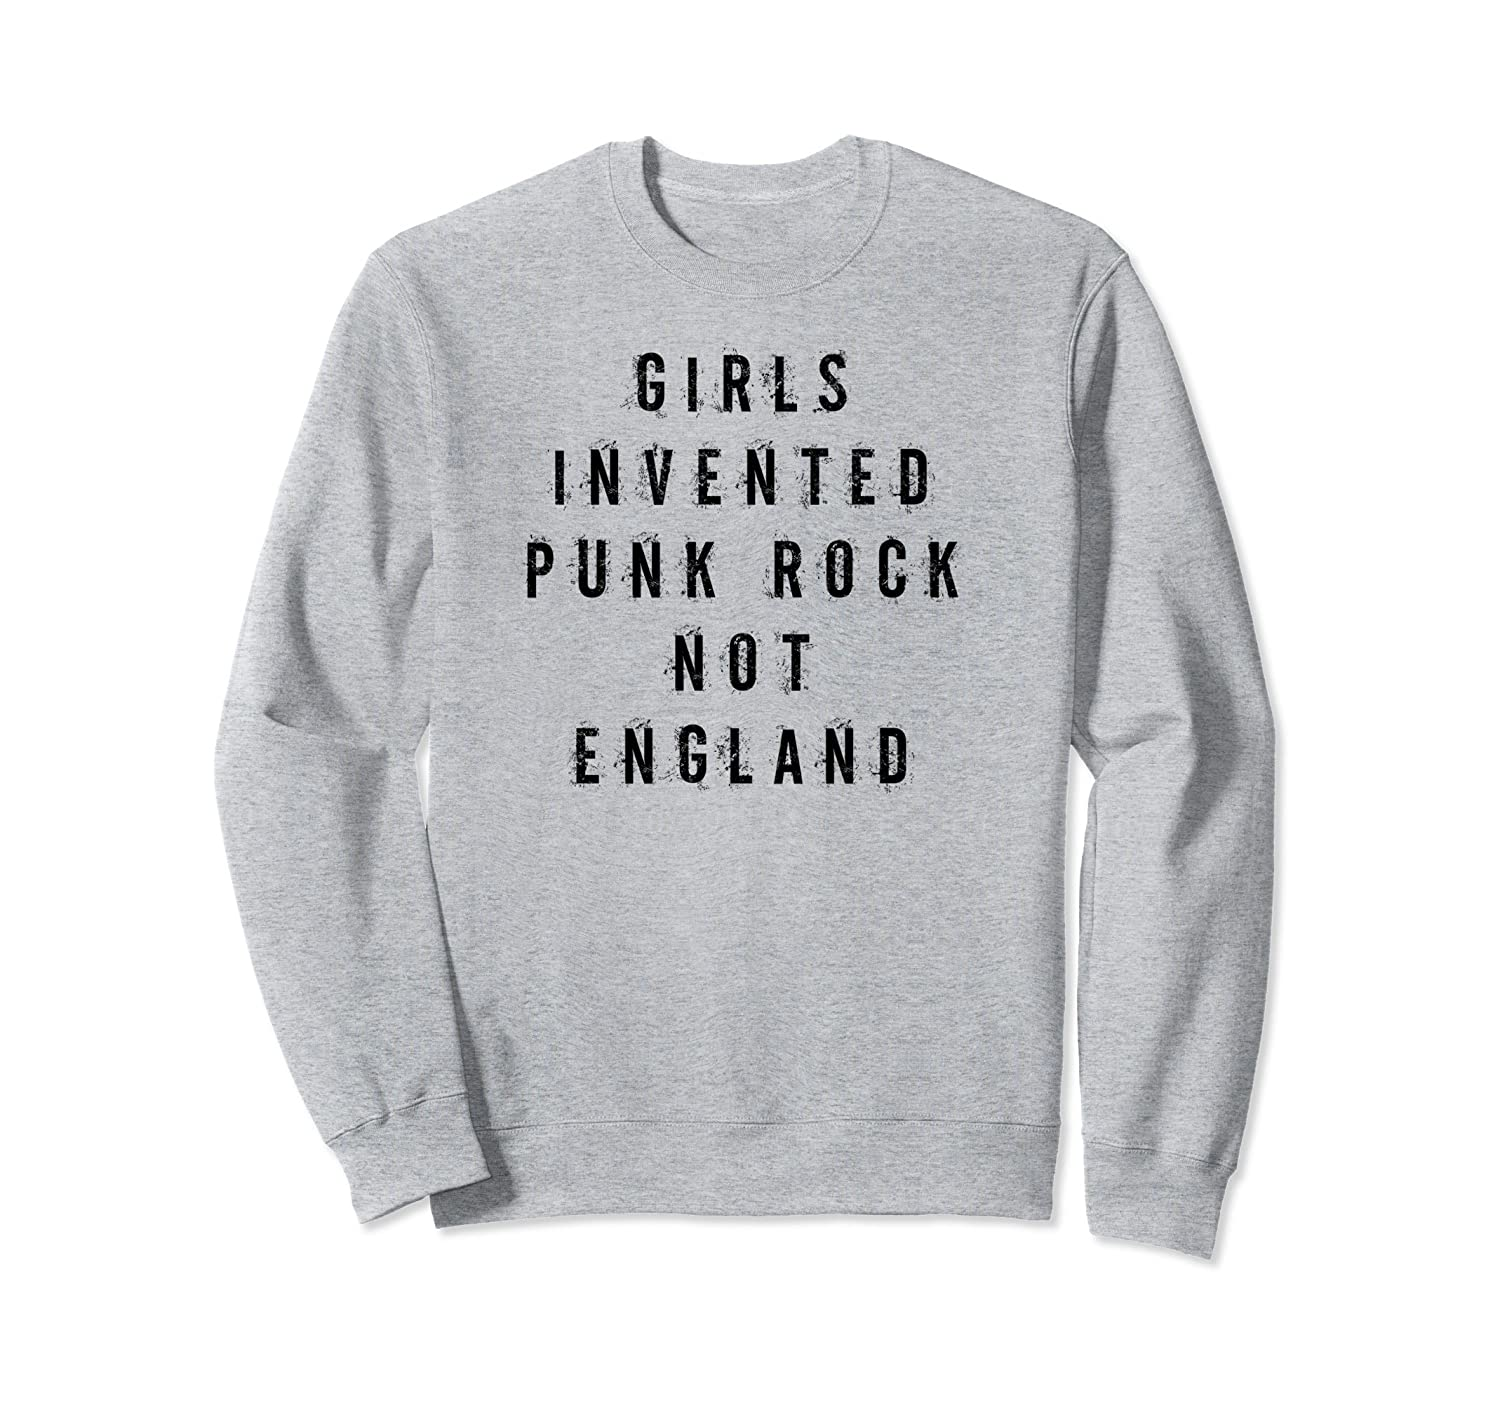 girls invented punk rock not england sweatshirt anz anztshirt. Black Bedroom Furniture Sets. Home Design Ideas